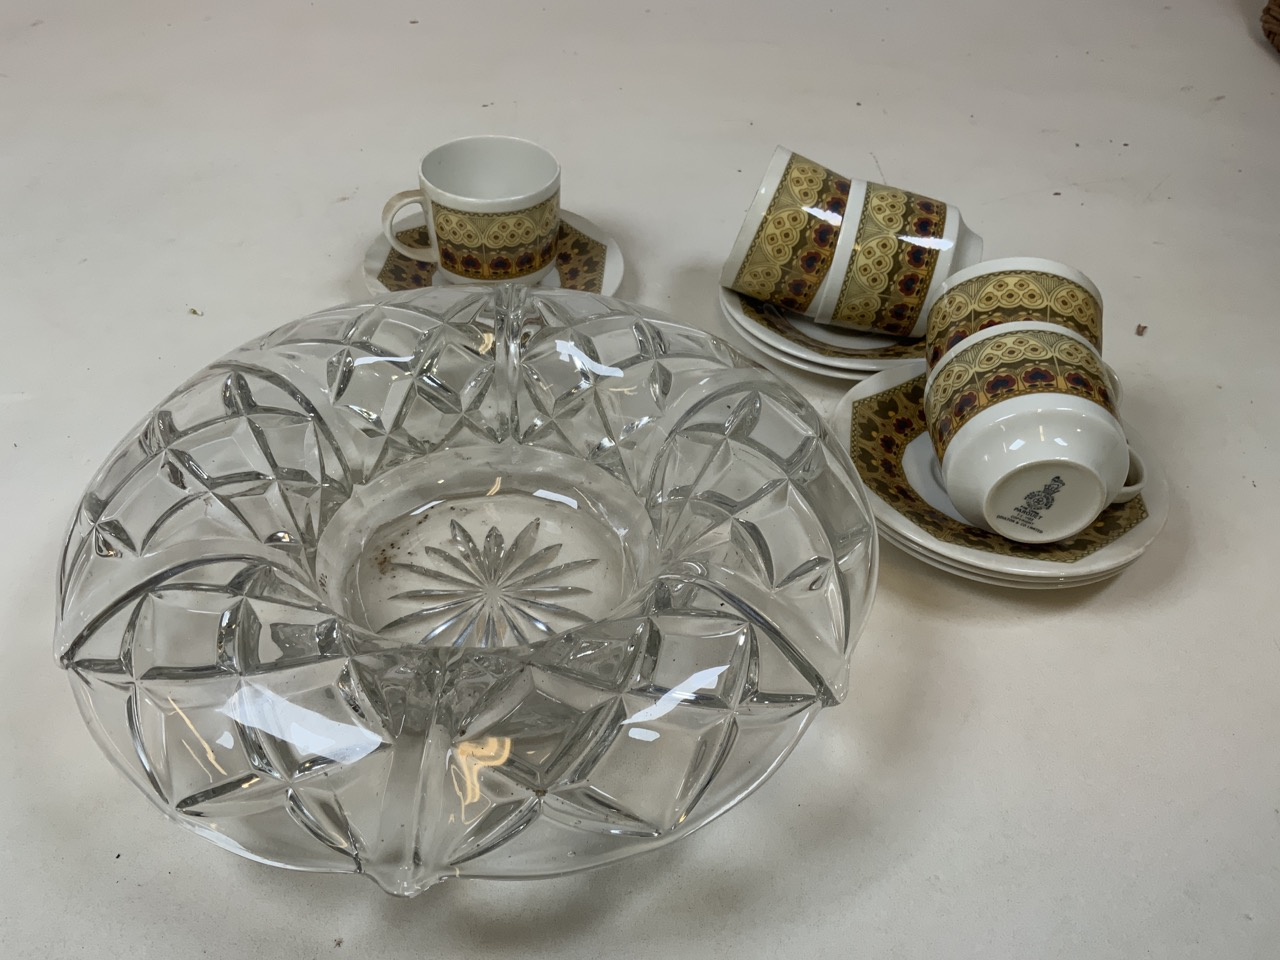 A vintage wicker ten bottle carrier together with Royal Doulton Parquet design tea cups and - Image 3 of 3